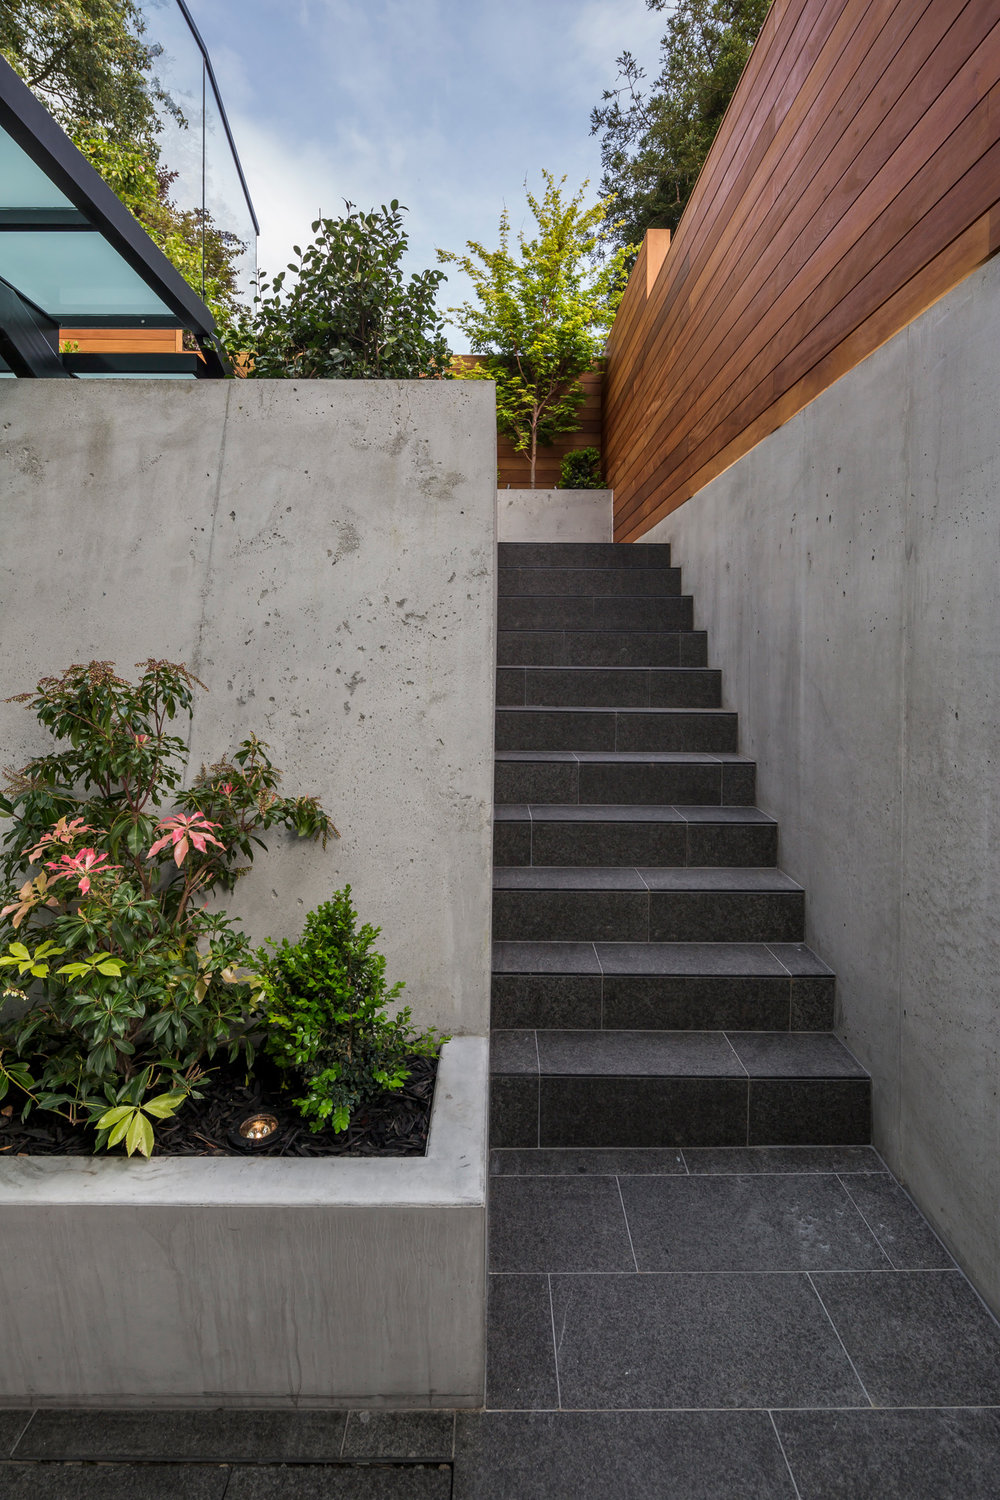 160_Lower_Patio_Stairway_1668.jpg